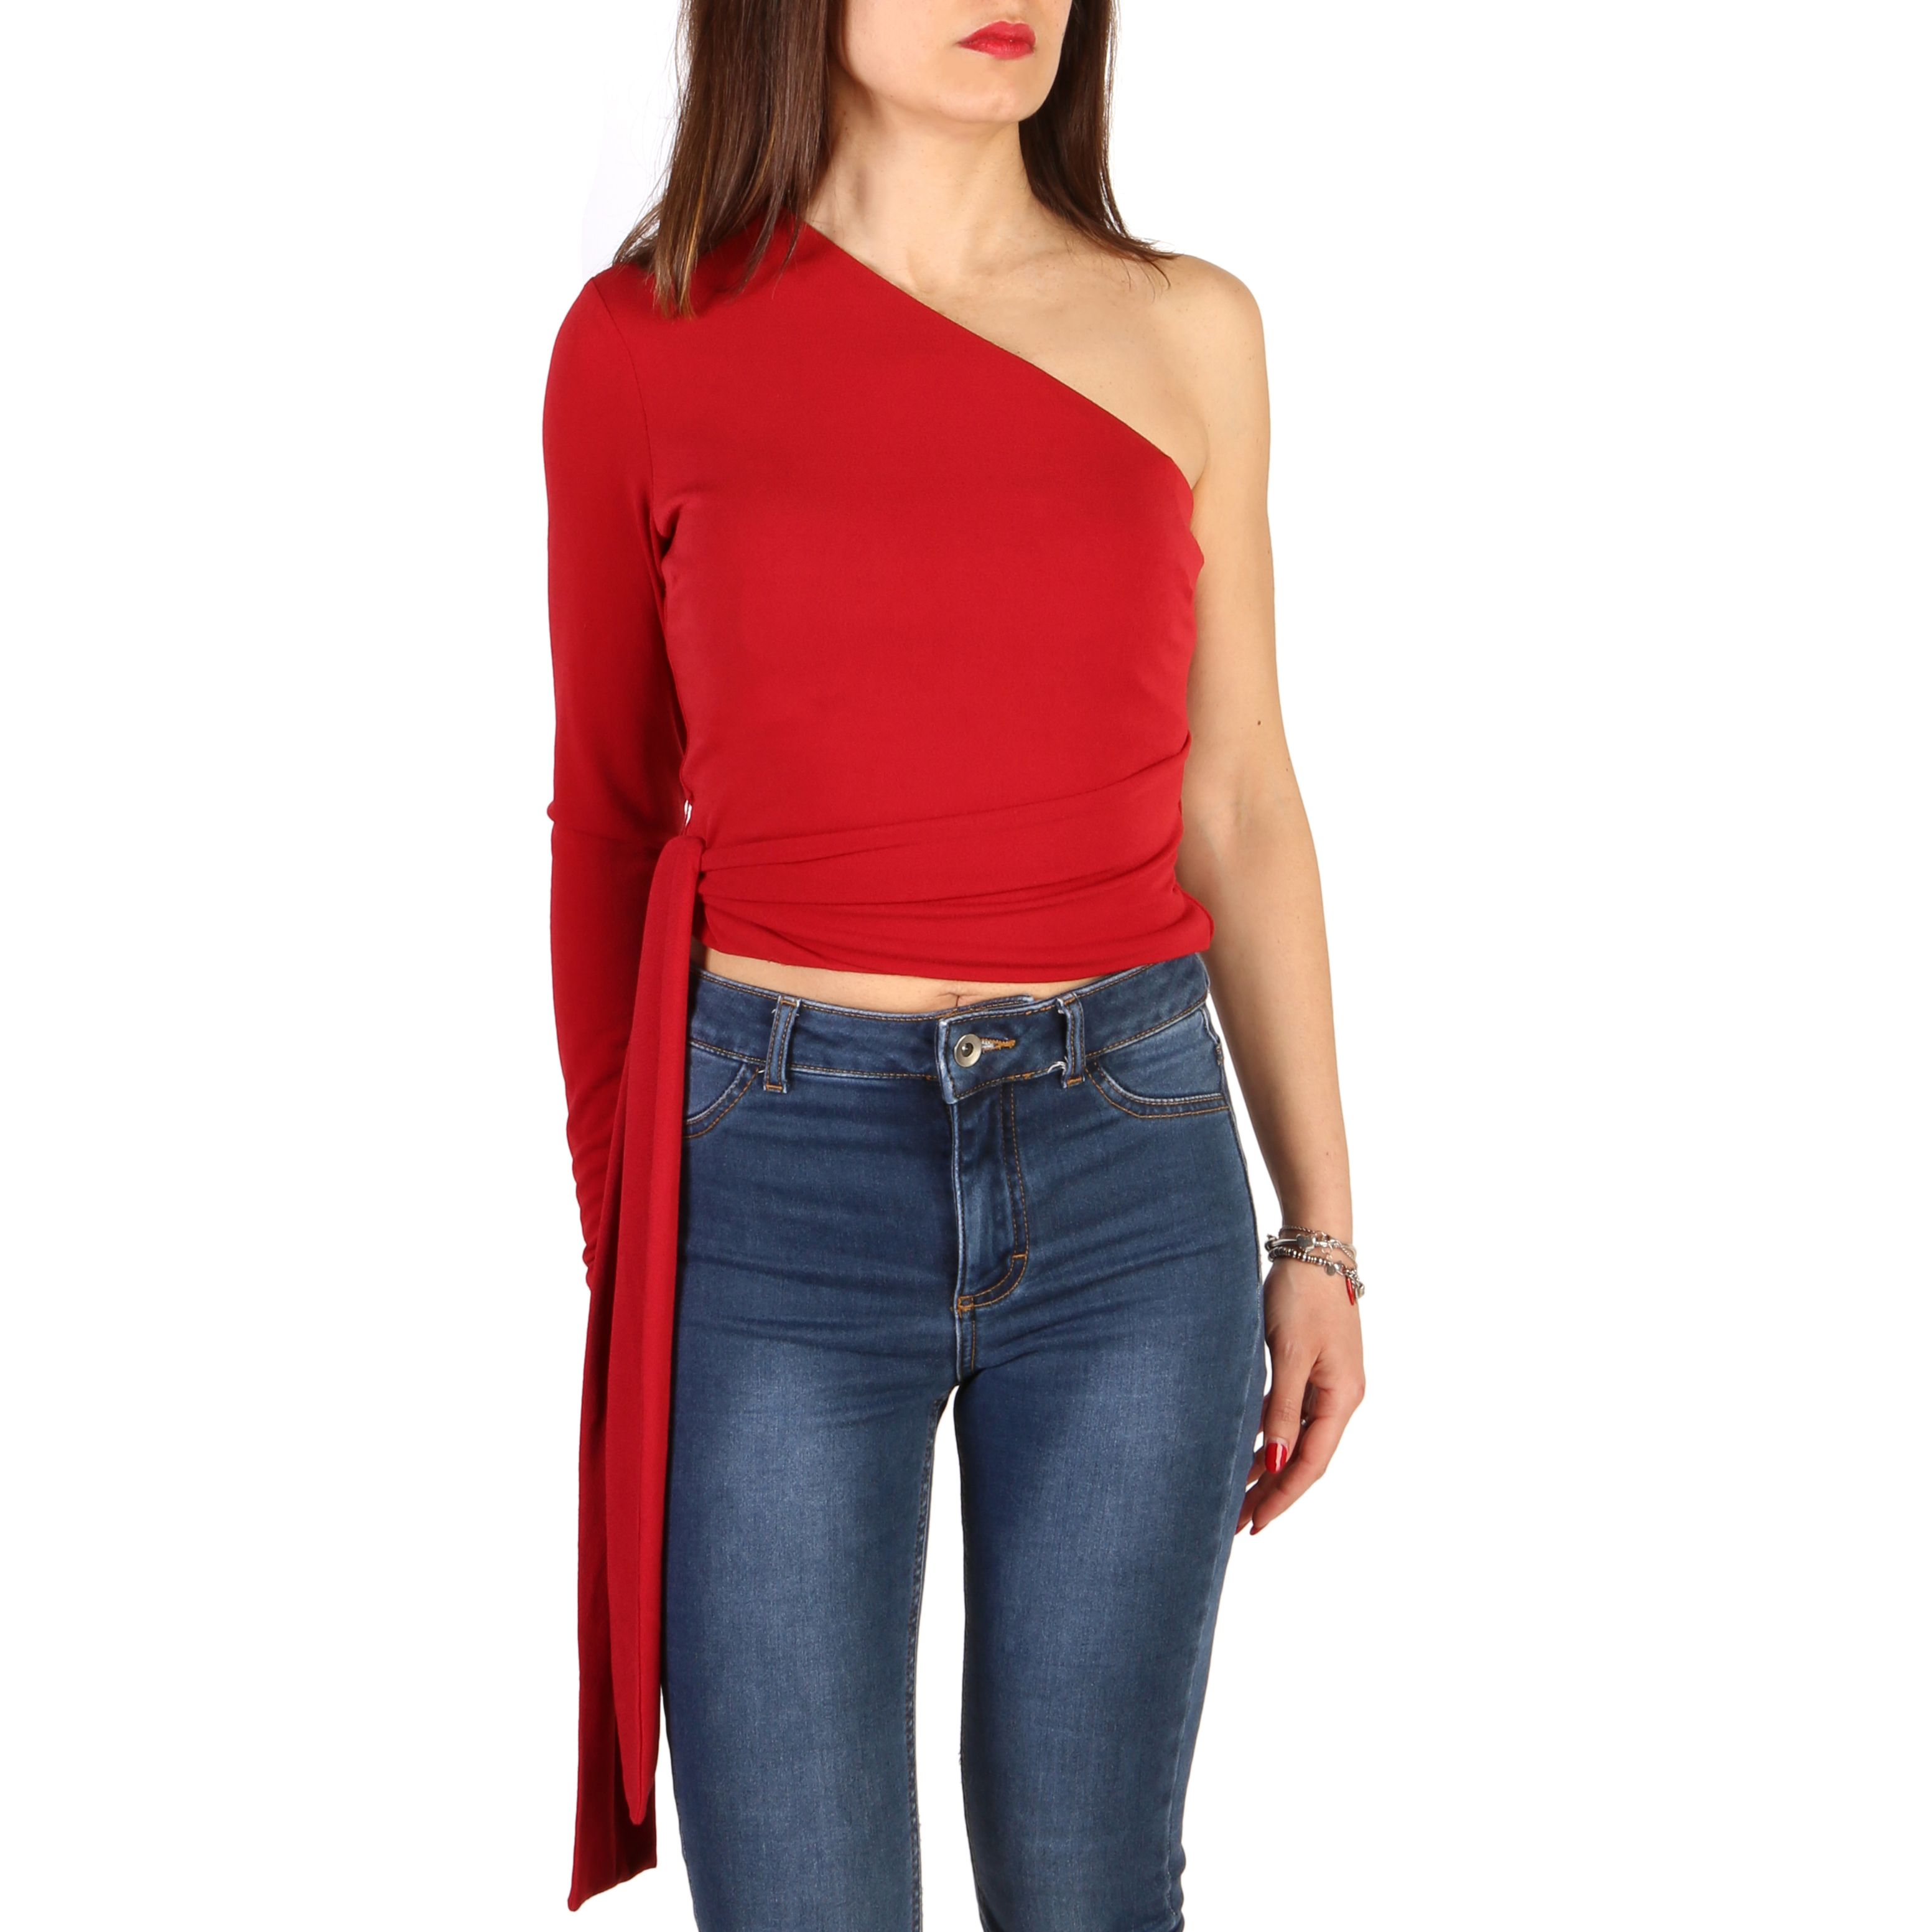 Guess Womens Tops